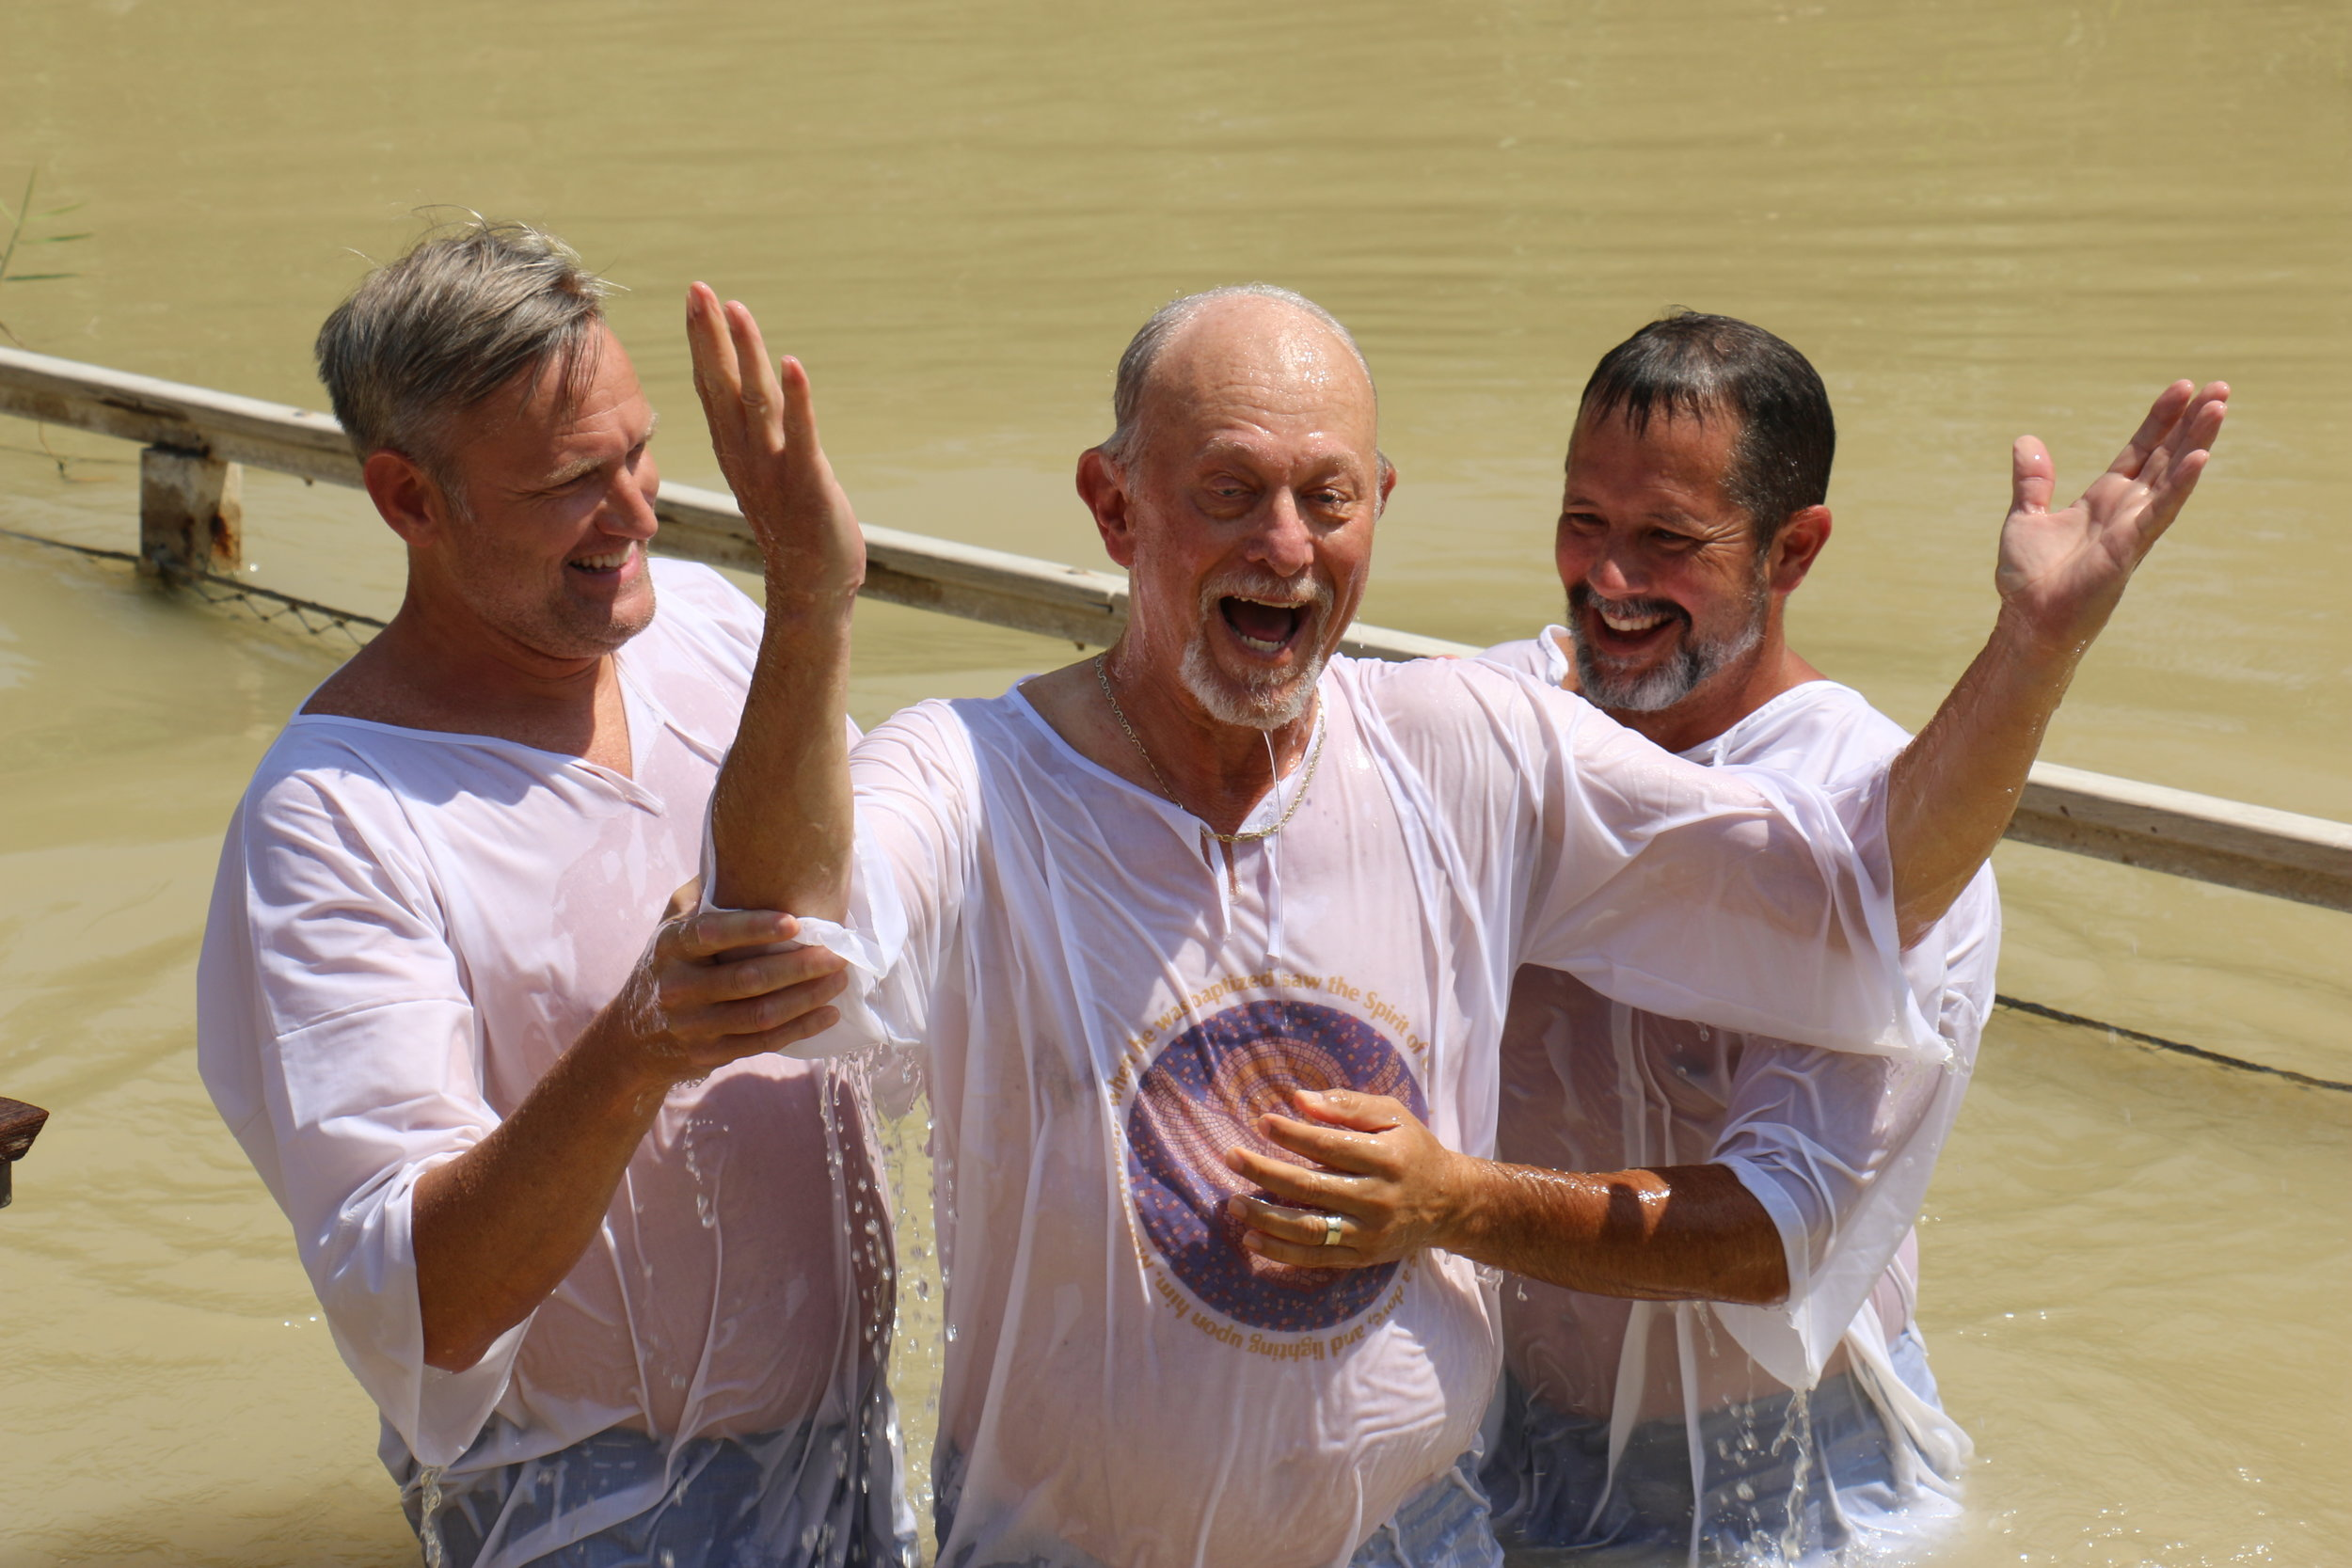 Is always special when a Leader crosses the Jordan River in his own life. Welcome to your Promised Land!